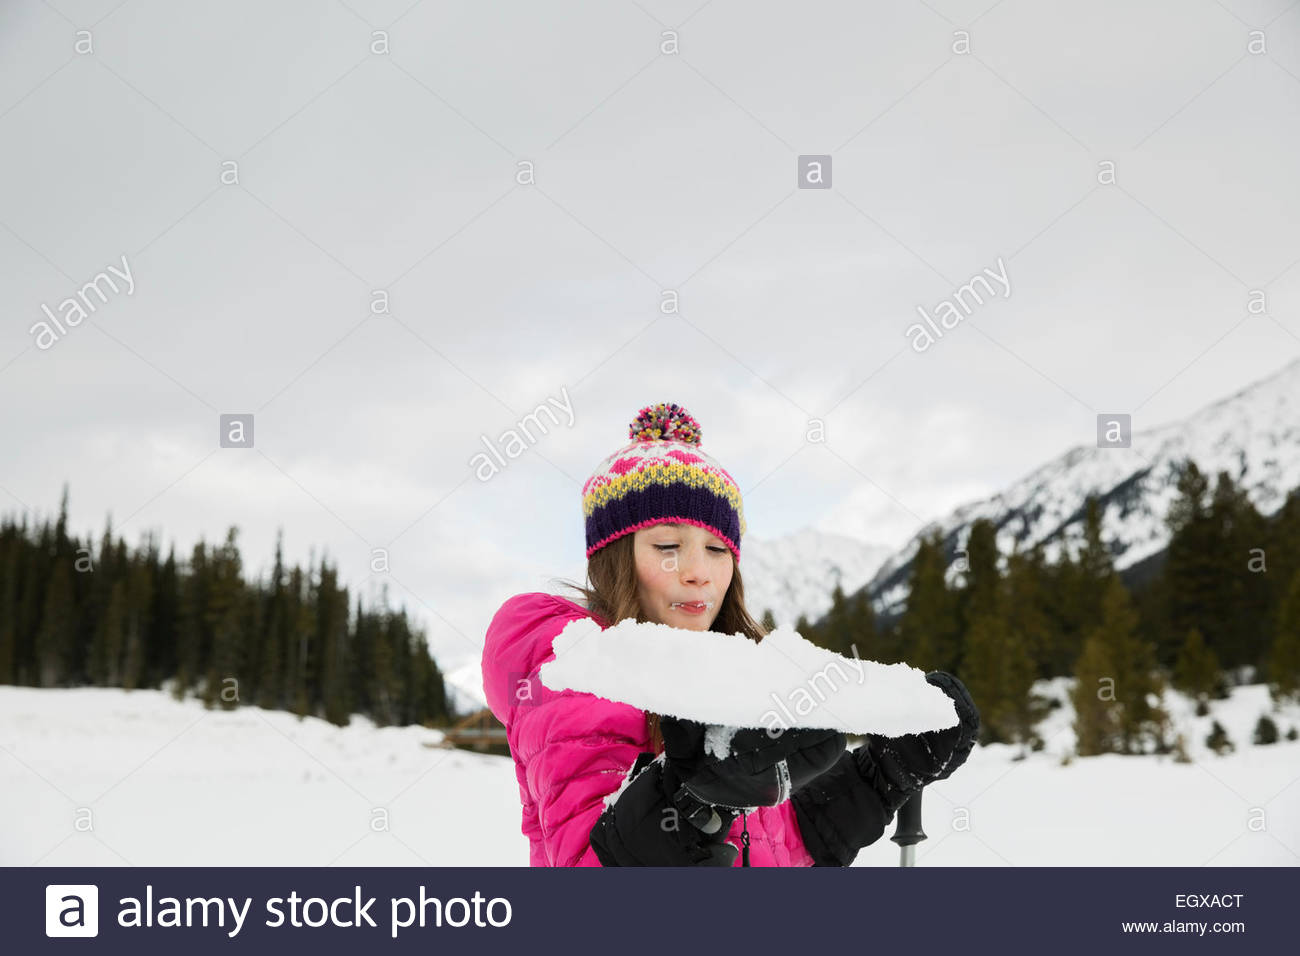 Girl holding snowy snowshoe en domaine Photo Stock